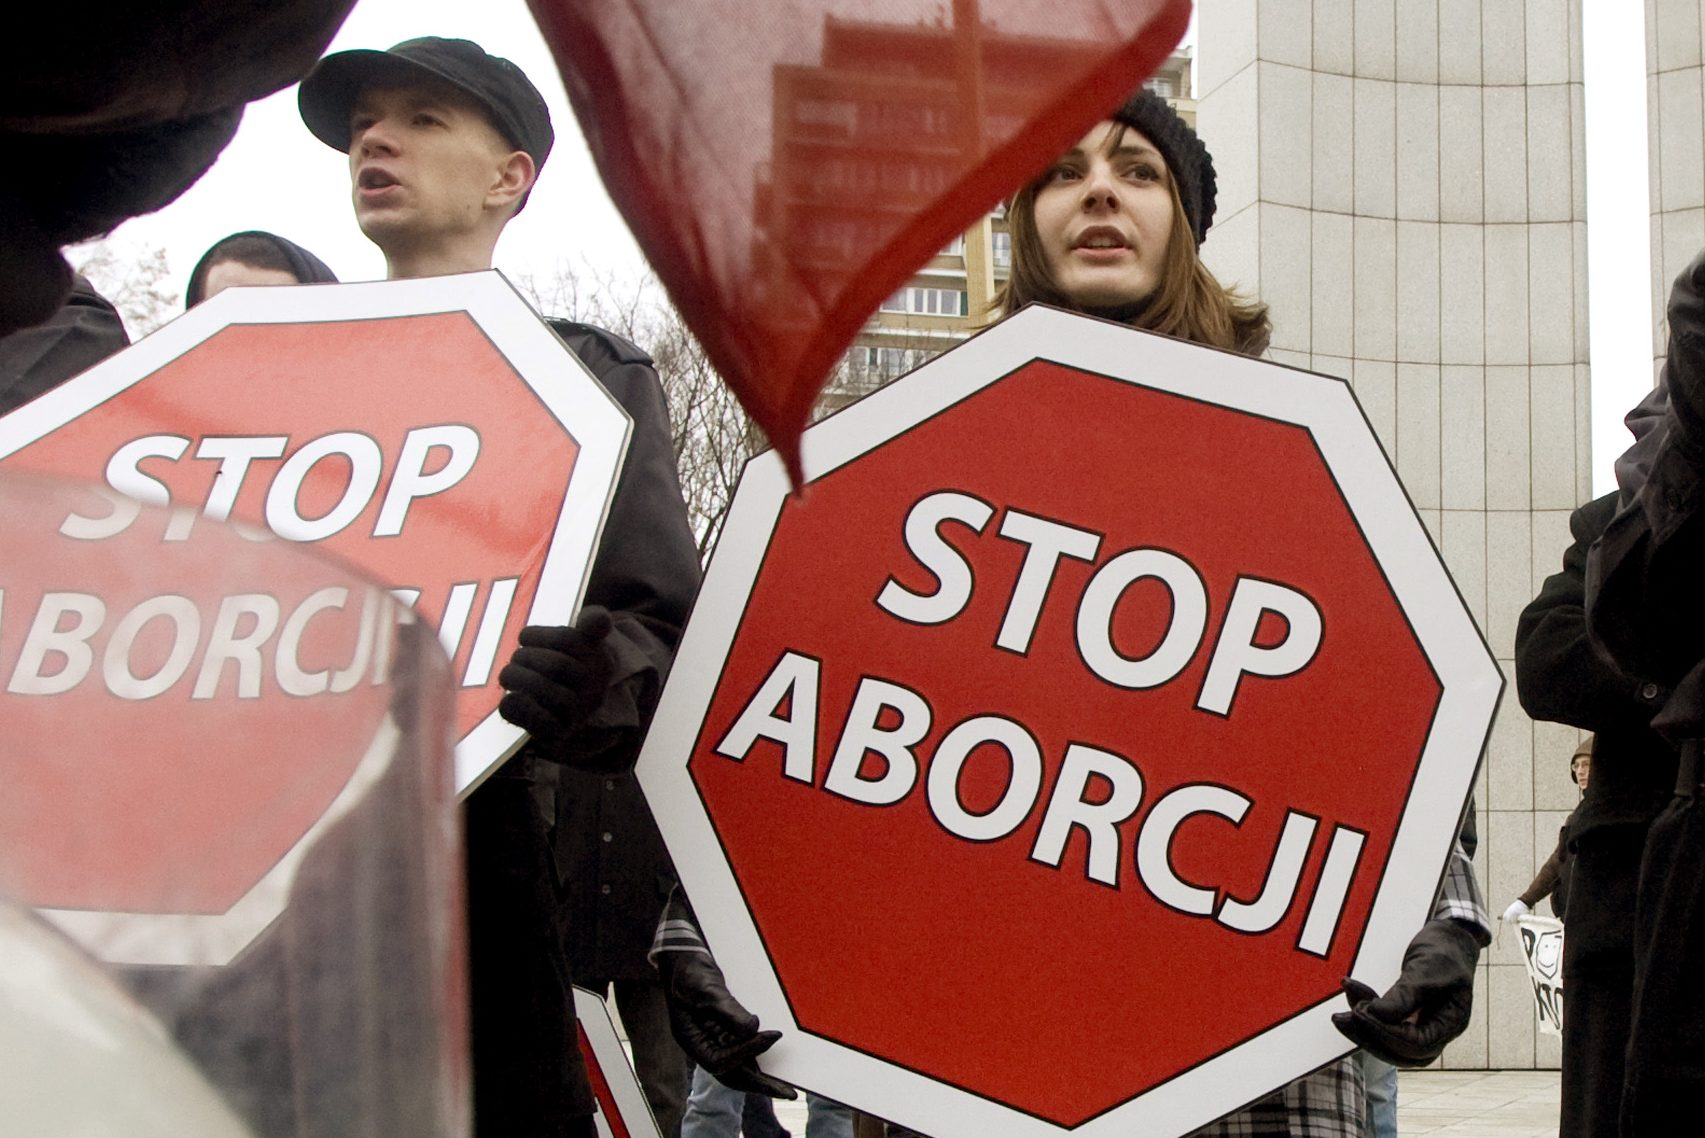 """People hold placards as they take part in a rally in central Warsaw, March 8, 2009. Several thousand people gathered in Poland capital to mark International Women's Day on Sunday. The placards read, """" Stop abortion"""".  REUTERS/Vasily Fedosenko  (POLAND POLITICS SOCIETY CONFLICT) - RTXCI8F"""